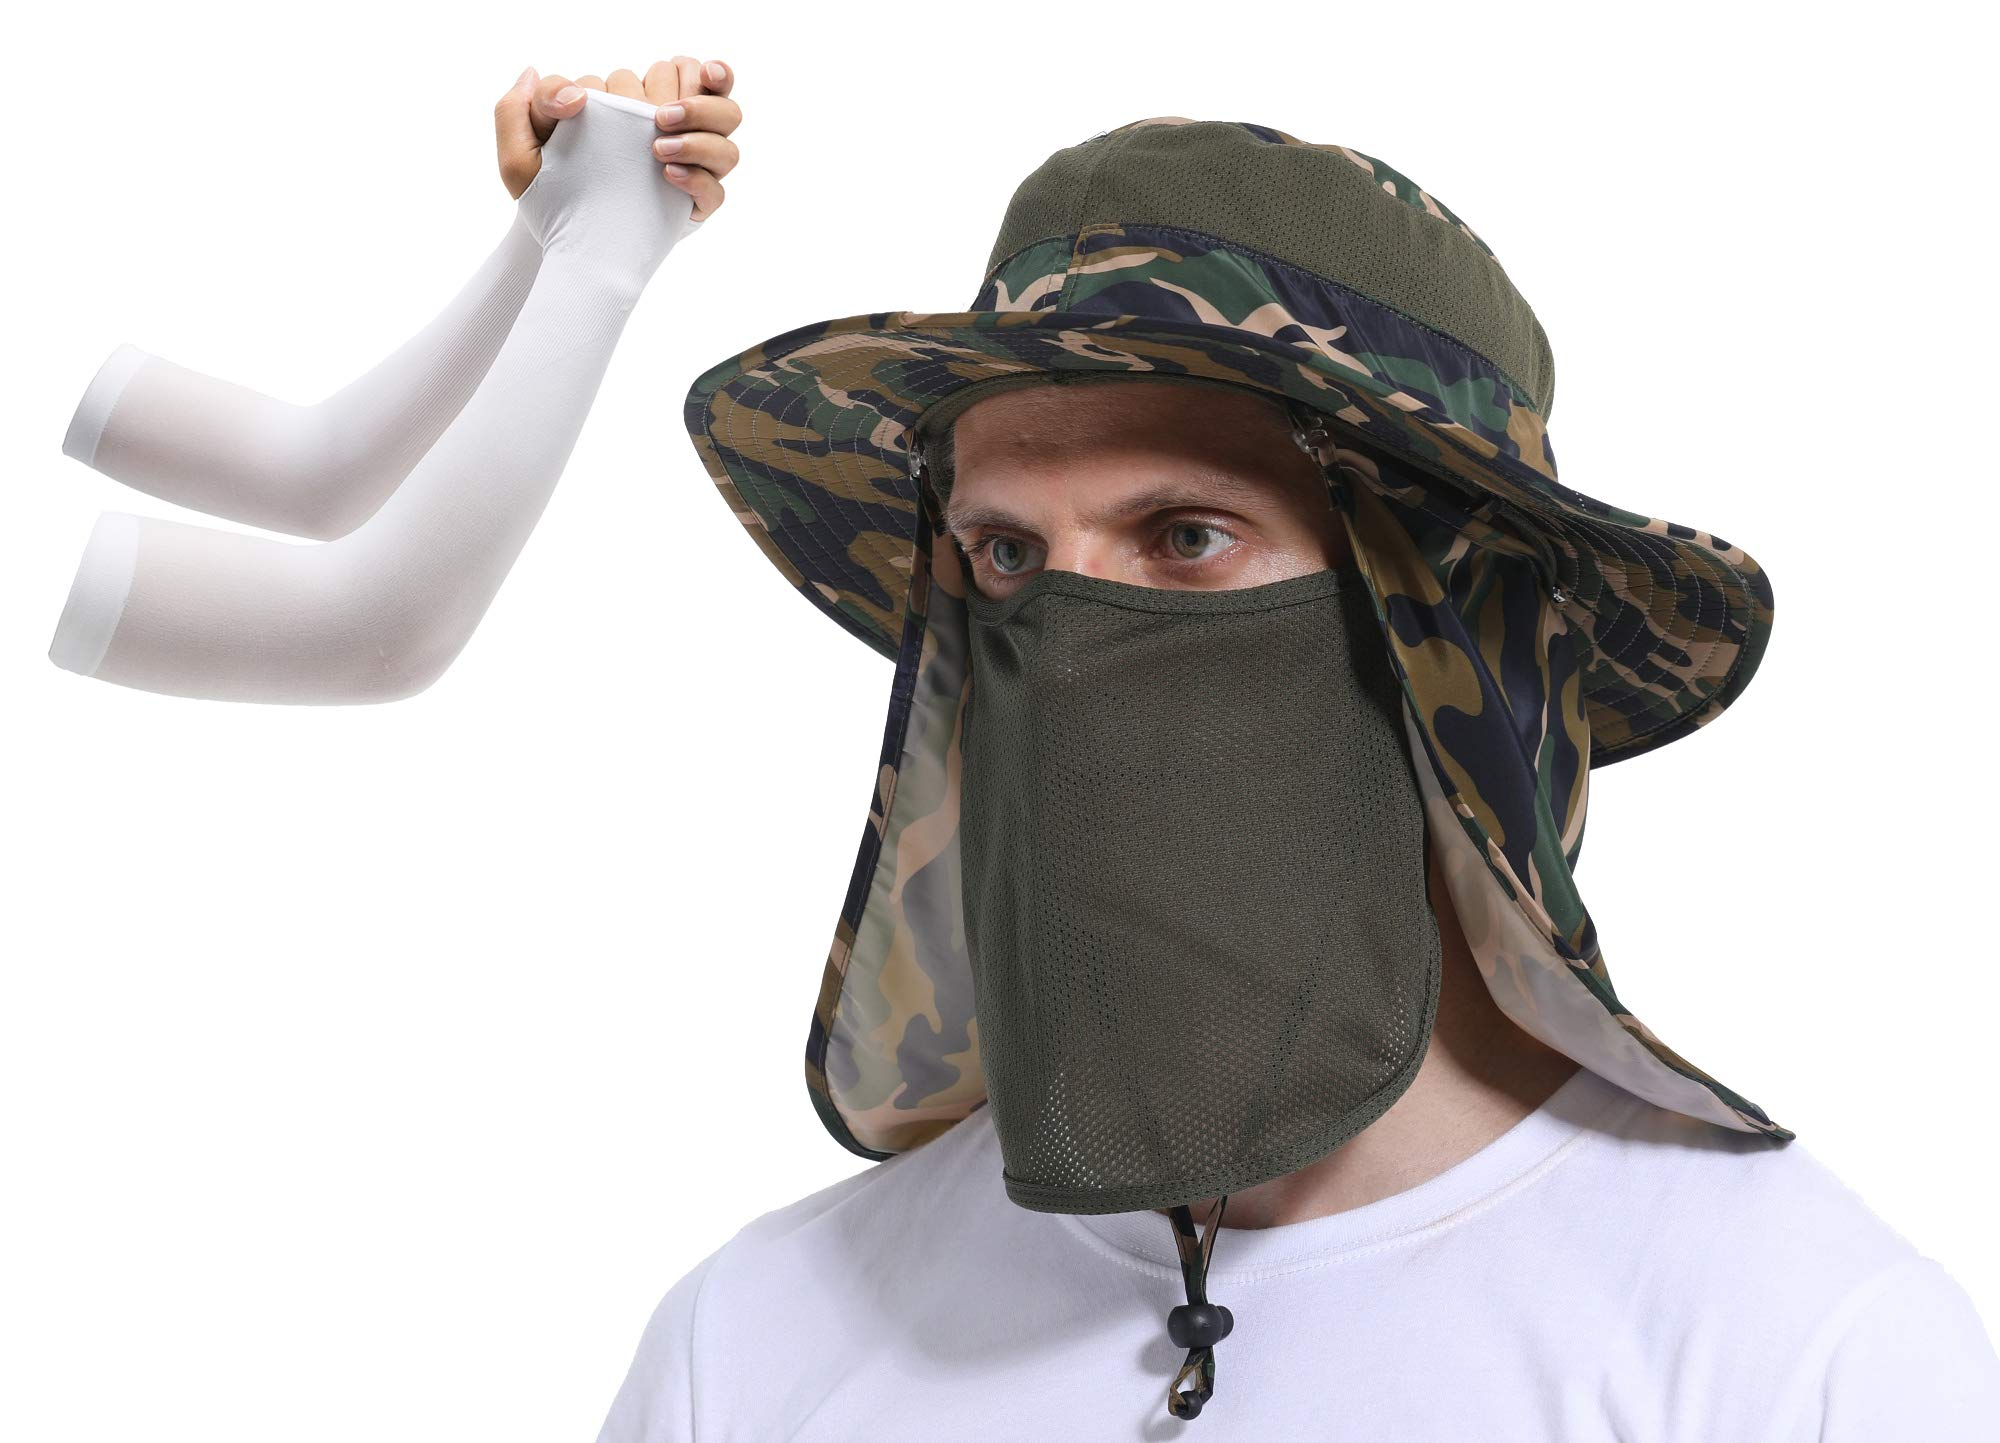 KORAMAN Fishing Hat UPF 50+ UV Sun Protection Breathable Wide Brim with Removable Face and Neck Flap Cap for Gardening Mowing Hiking Safari with Arm Sleeves